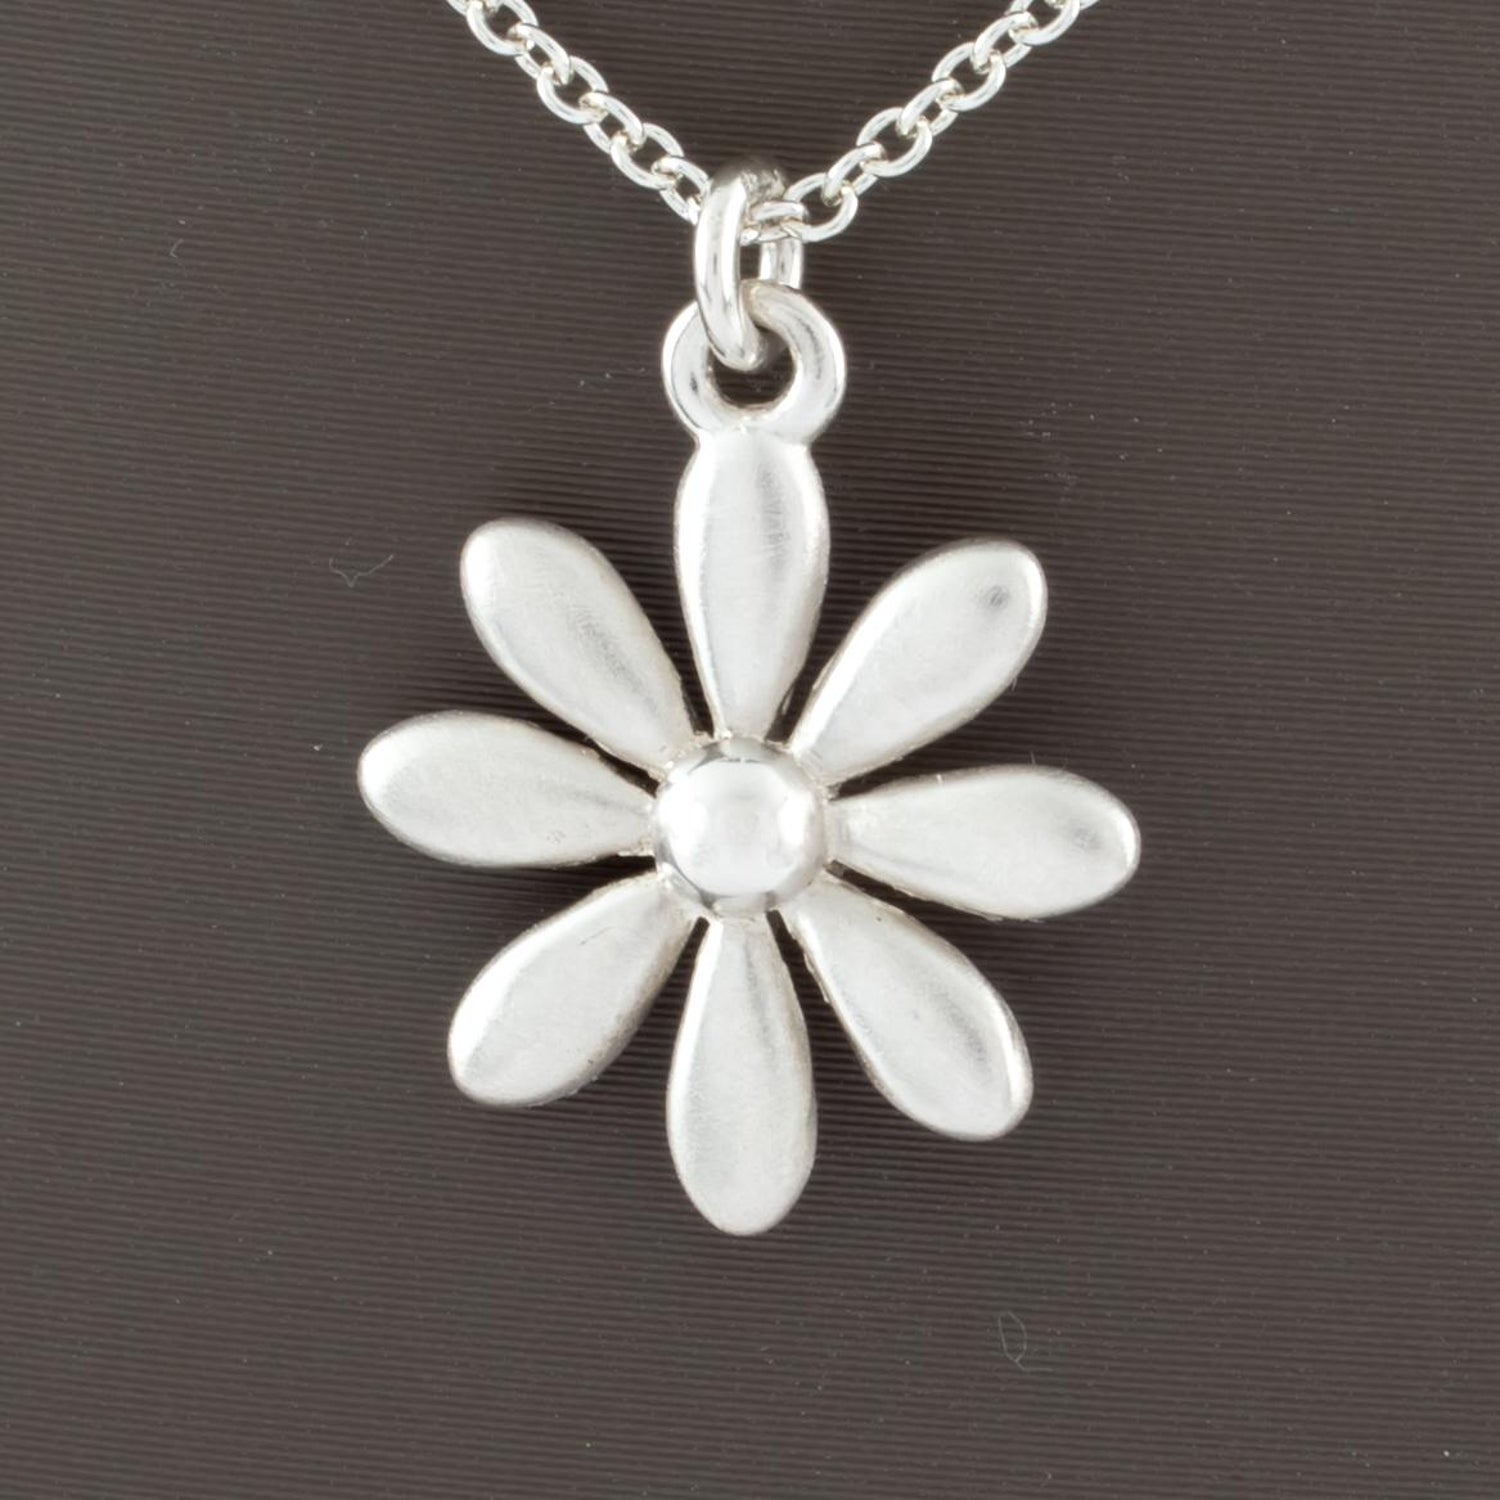 33982a2dd Tiffany and Co. Sterling Silver Daisy Pendant Necklace with Chain For Sale  at 1stdibs